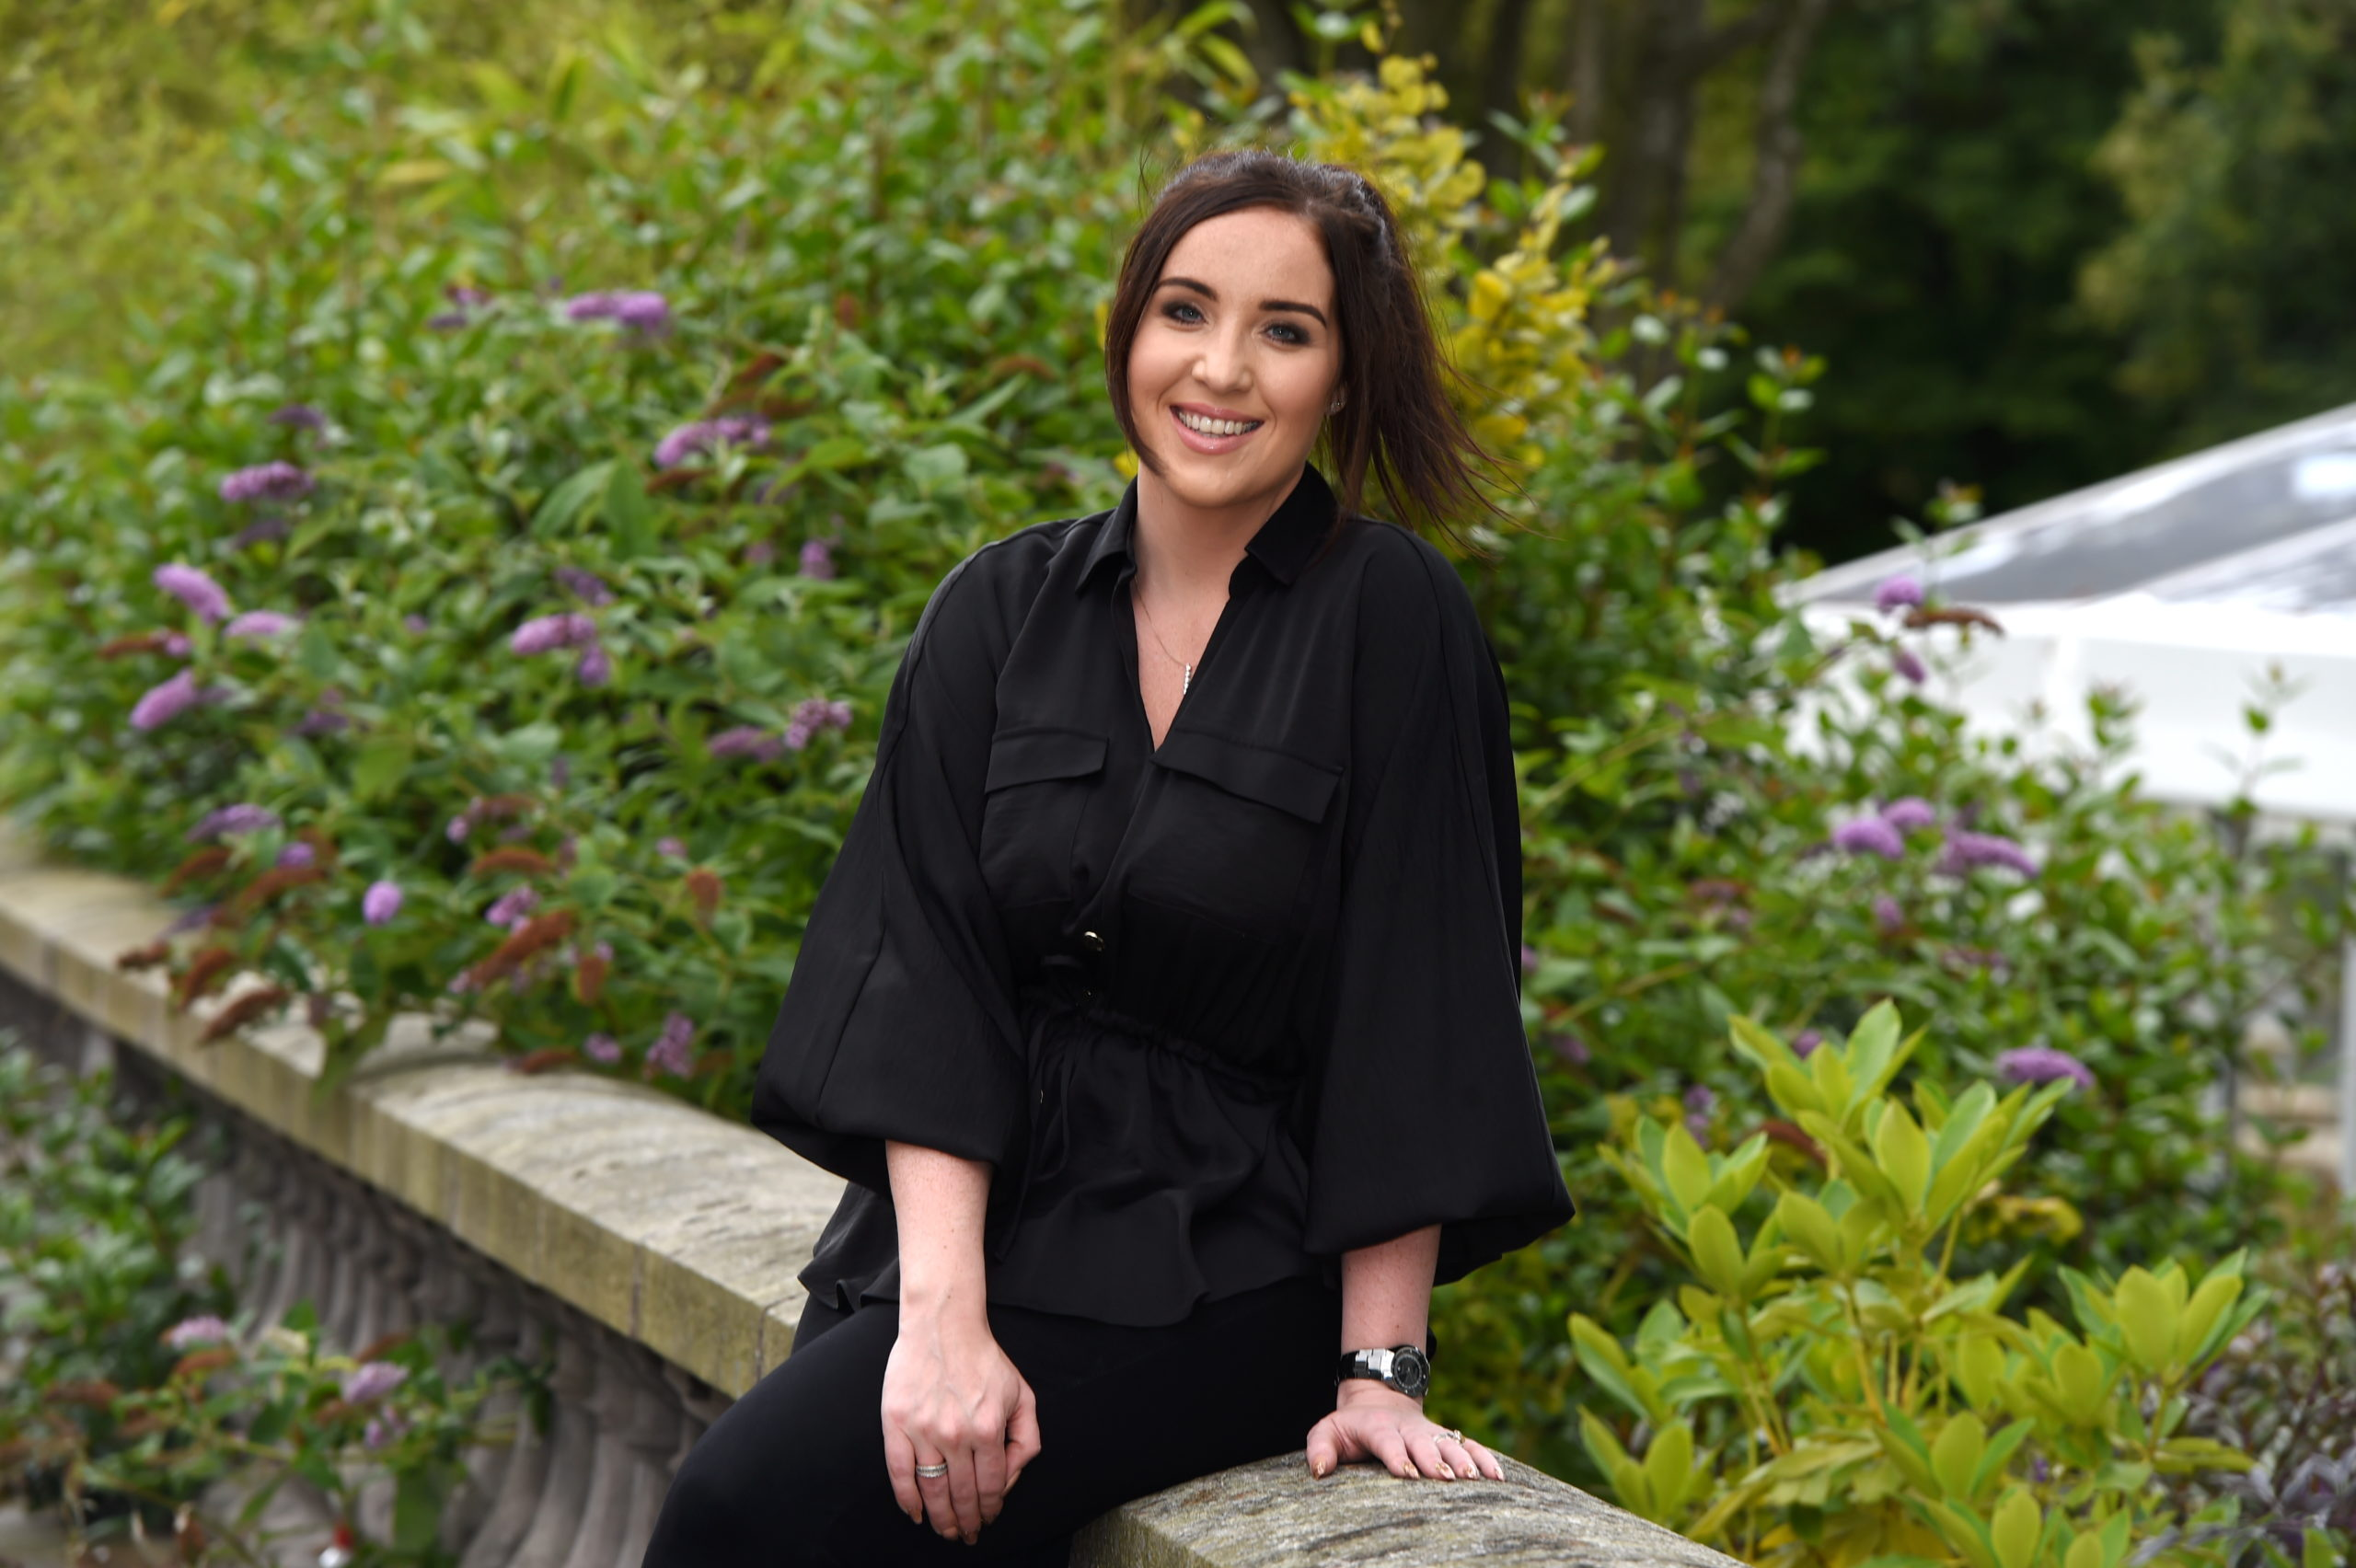 Michelle Wilson - owner of the one2one clinic on Albyn Terrace, Aberdeen - was eager to help others on their own weight loss journeys.